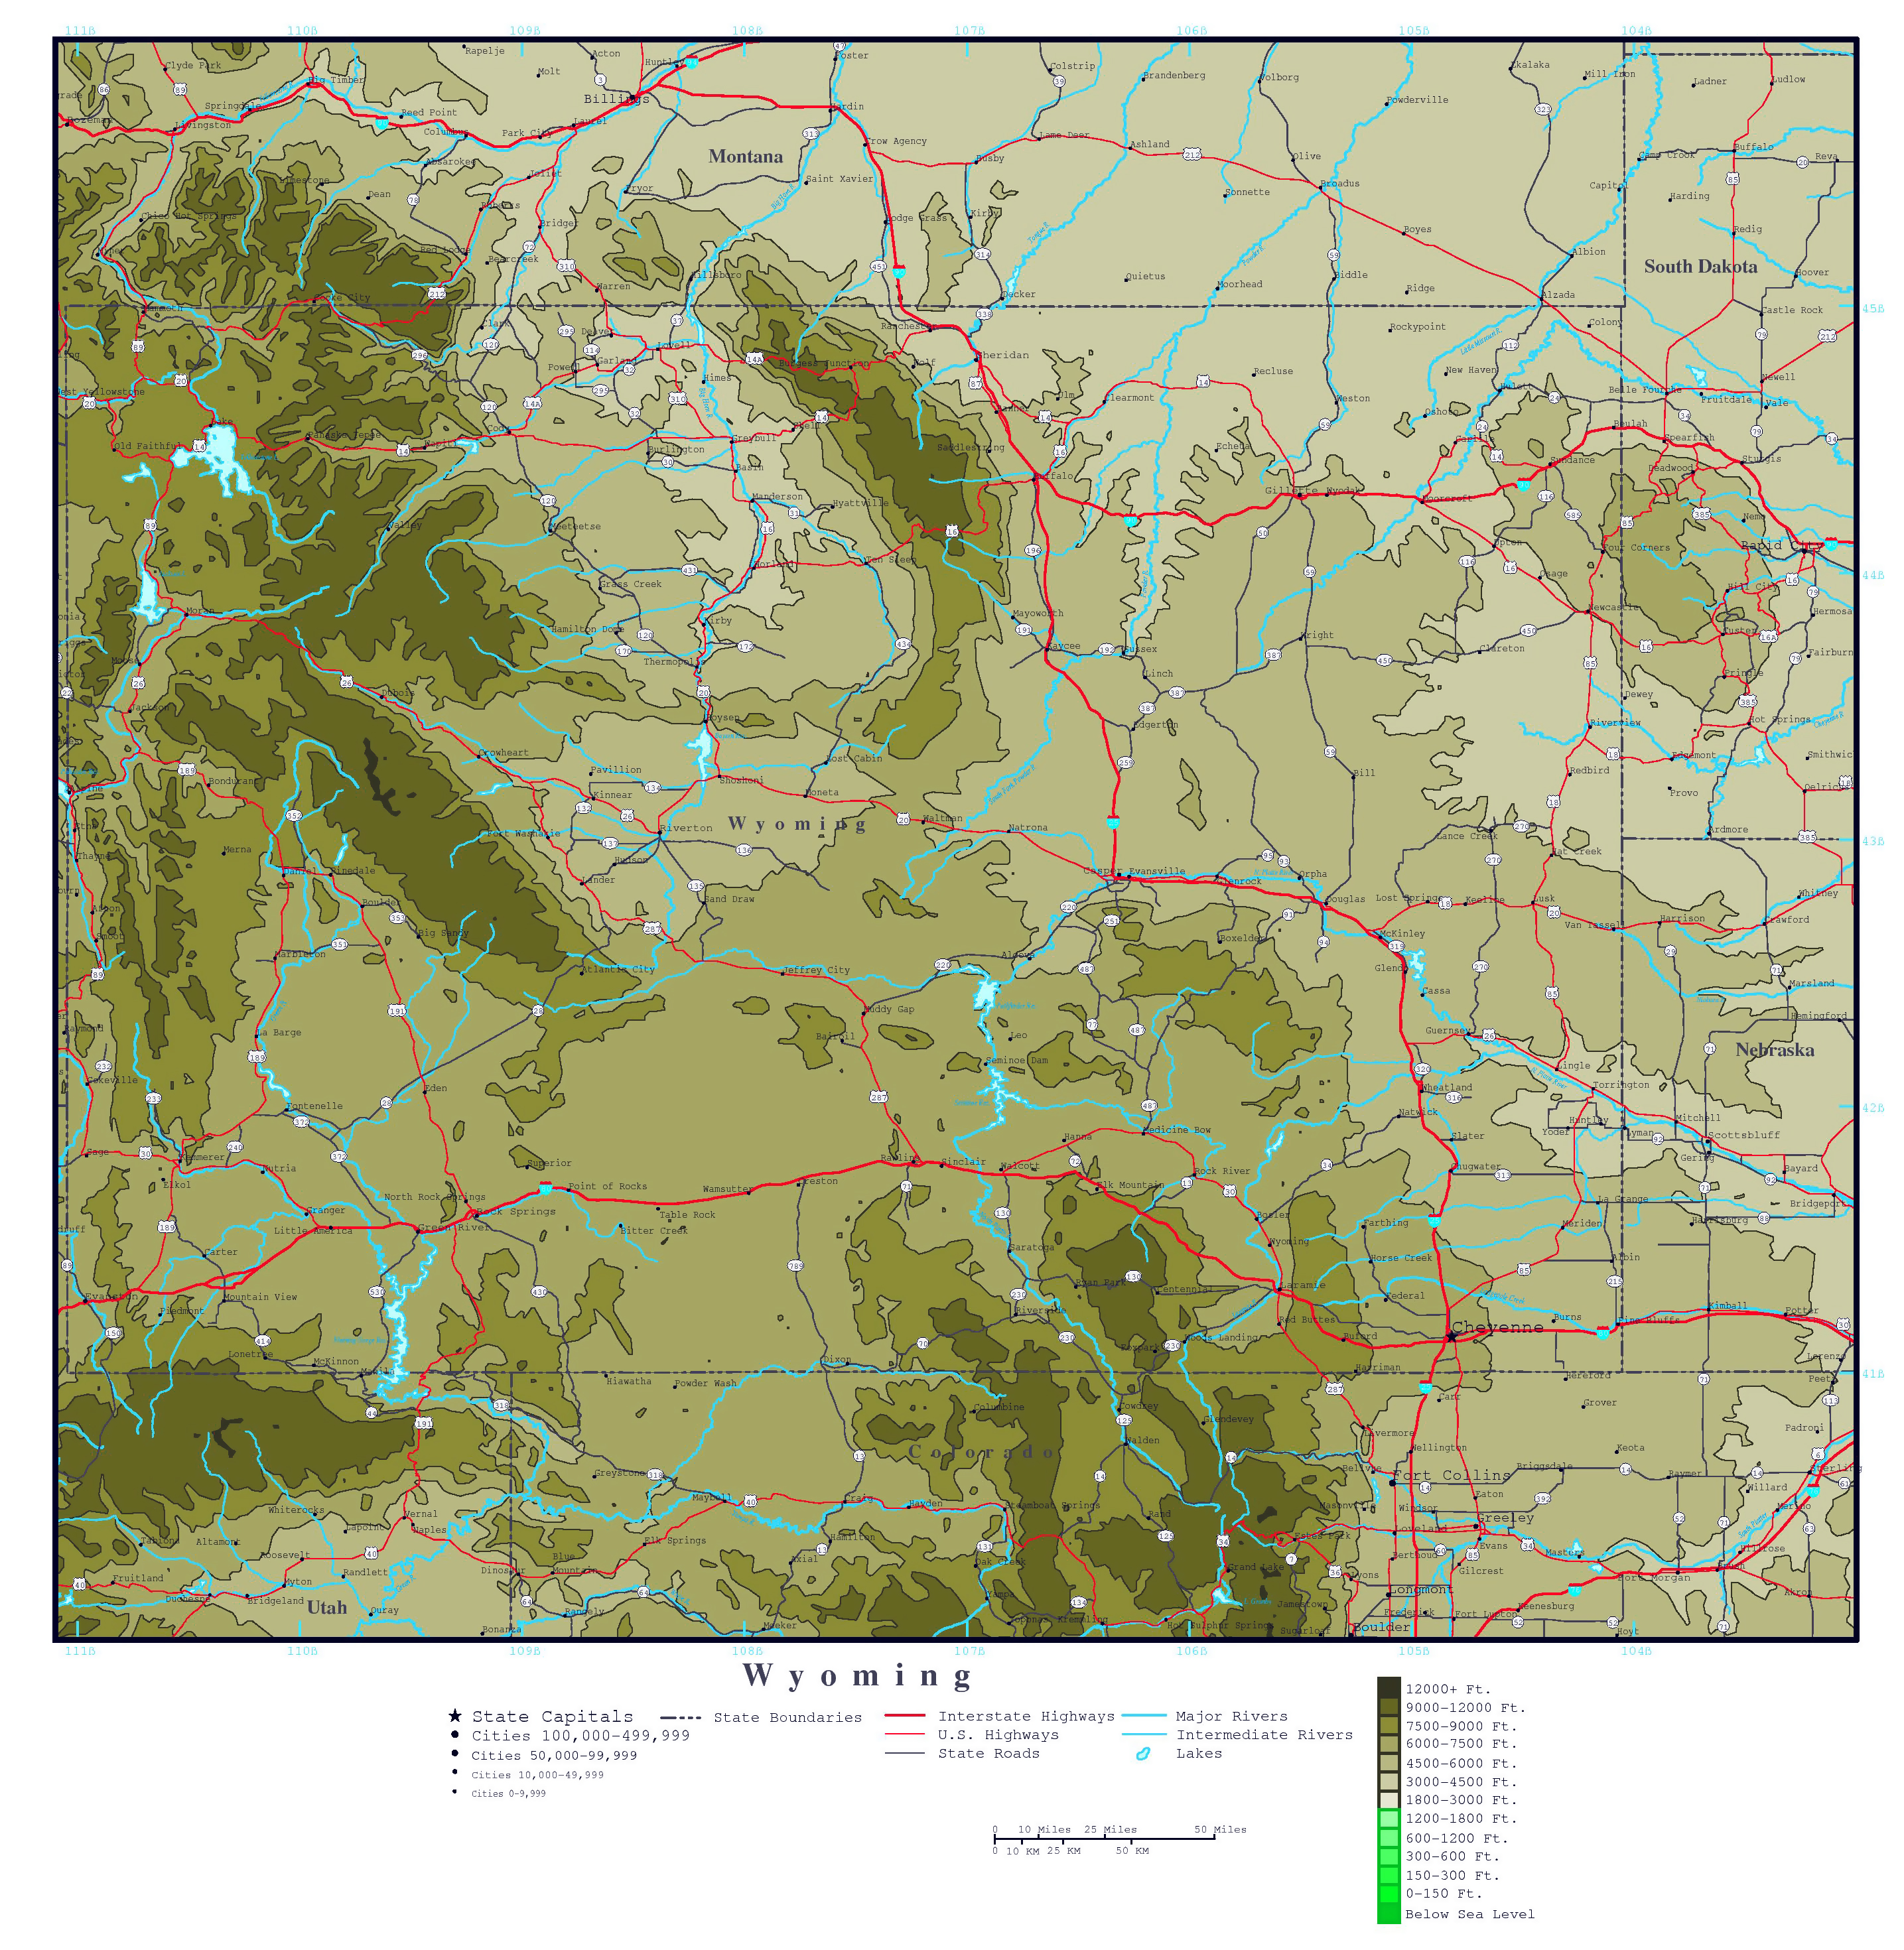 Wyoming Map Of Cities.Large Detailed Elevation Map Of Wyoming State With Roads Highways